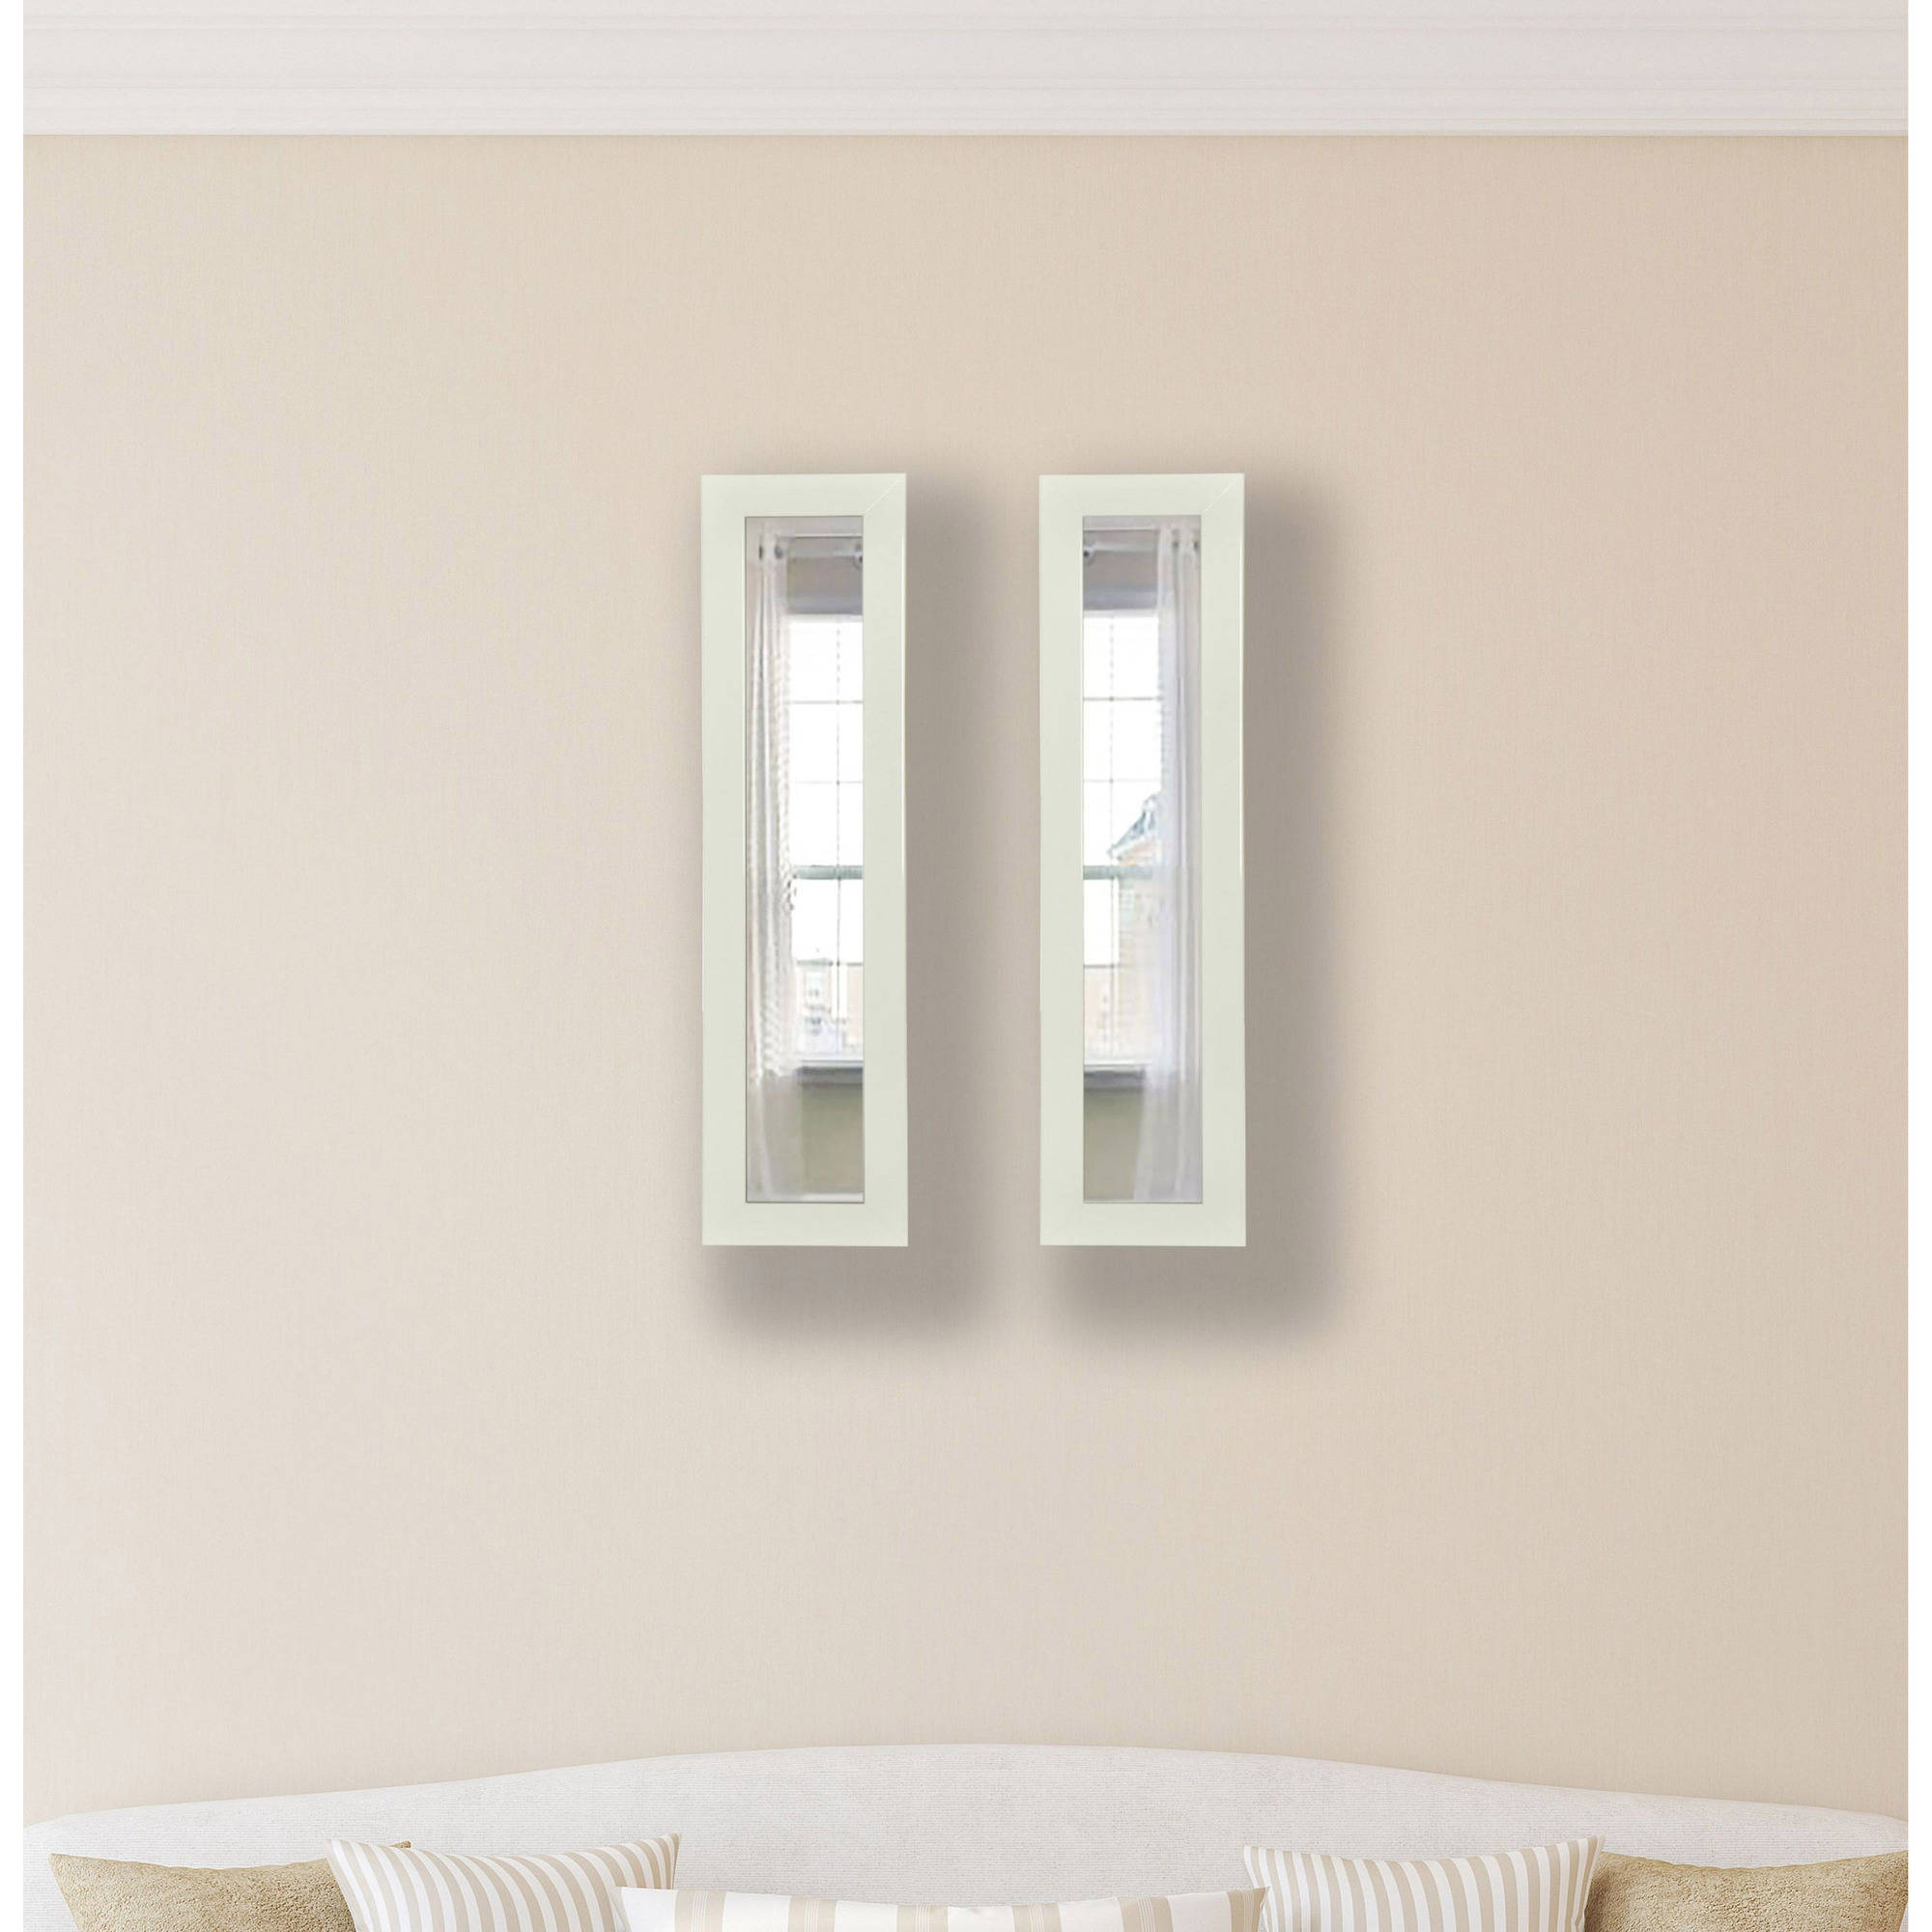 Rayne Glossy White Mirror Panel, Set of 2